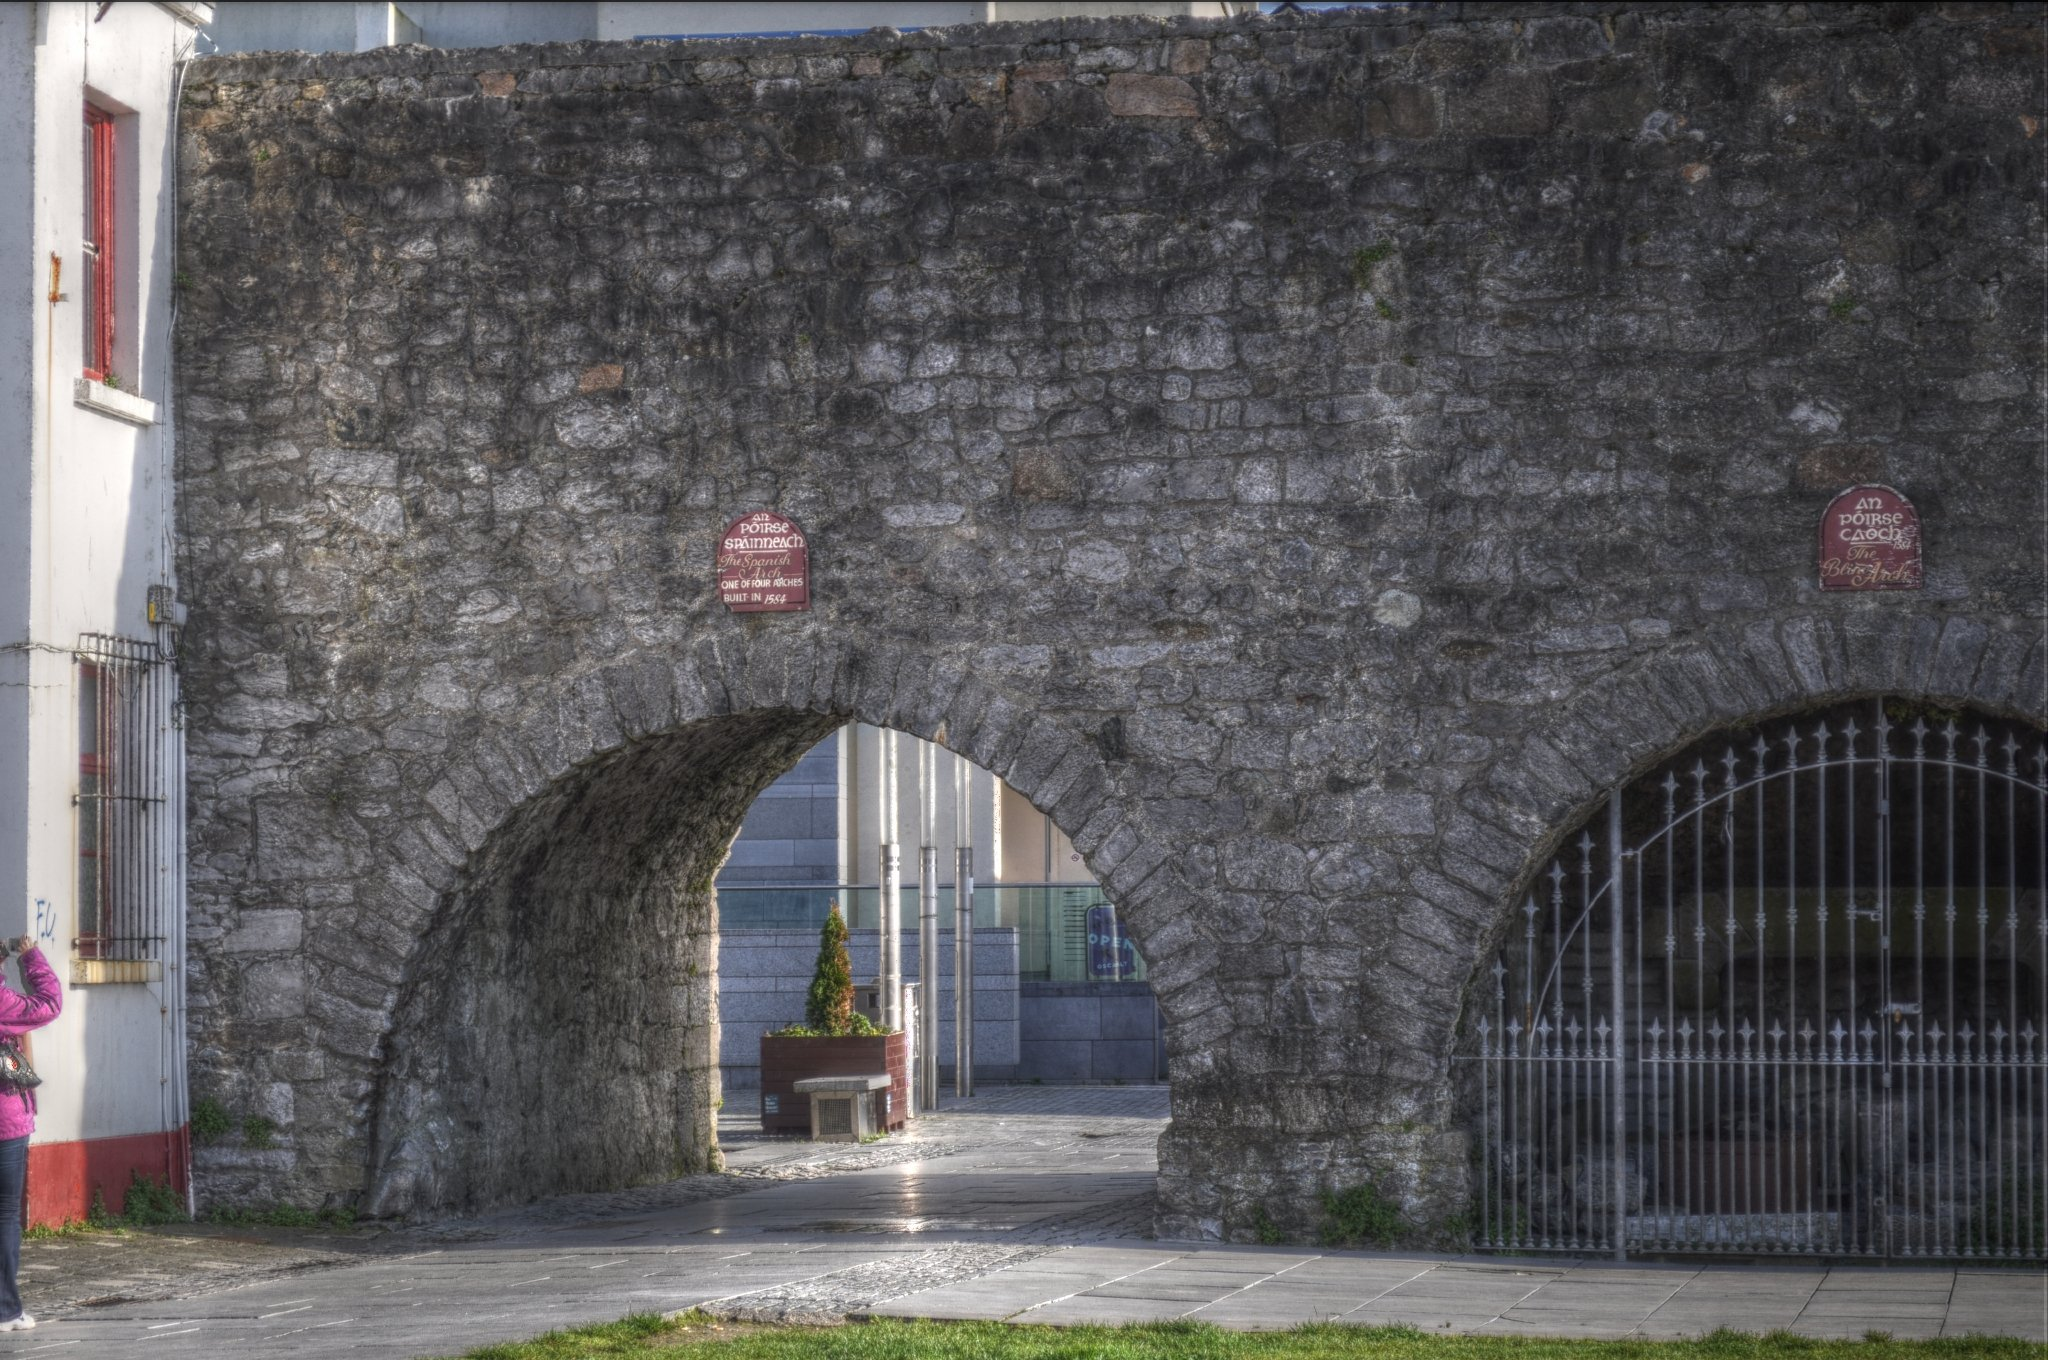 Spanish Arch in Galway - Visit Galway